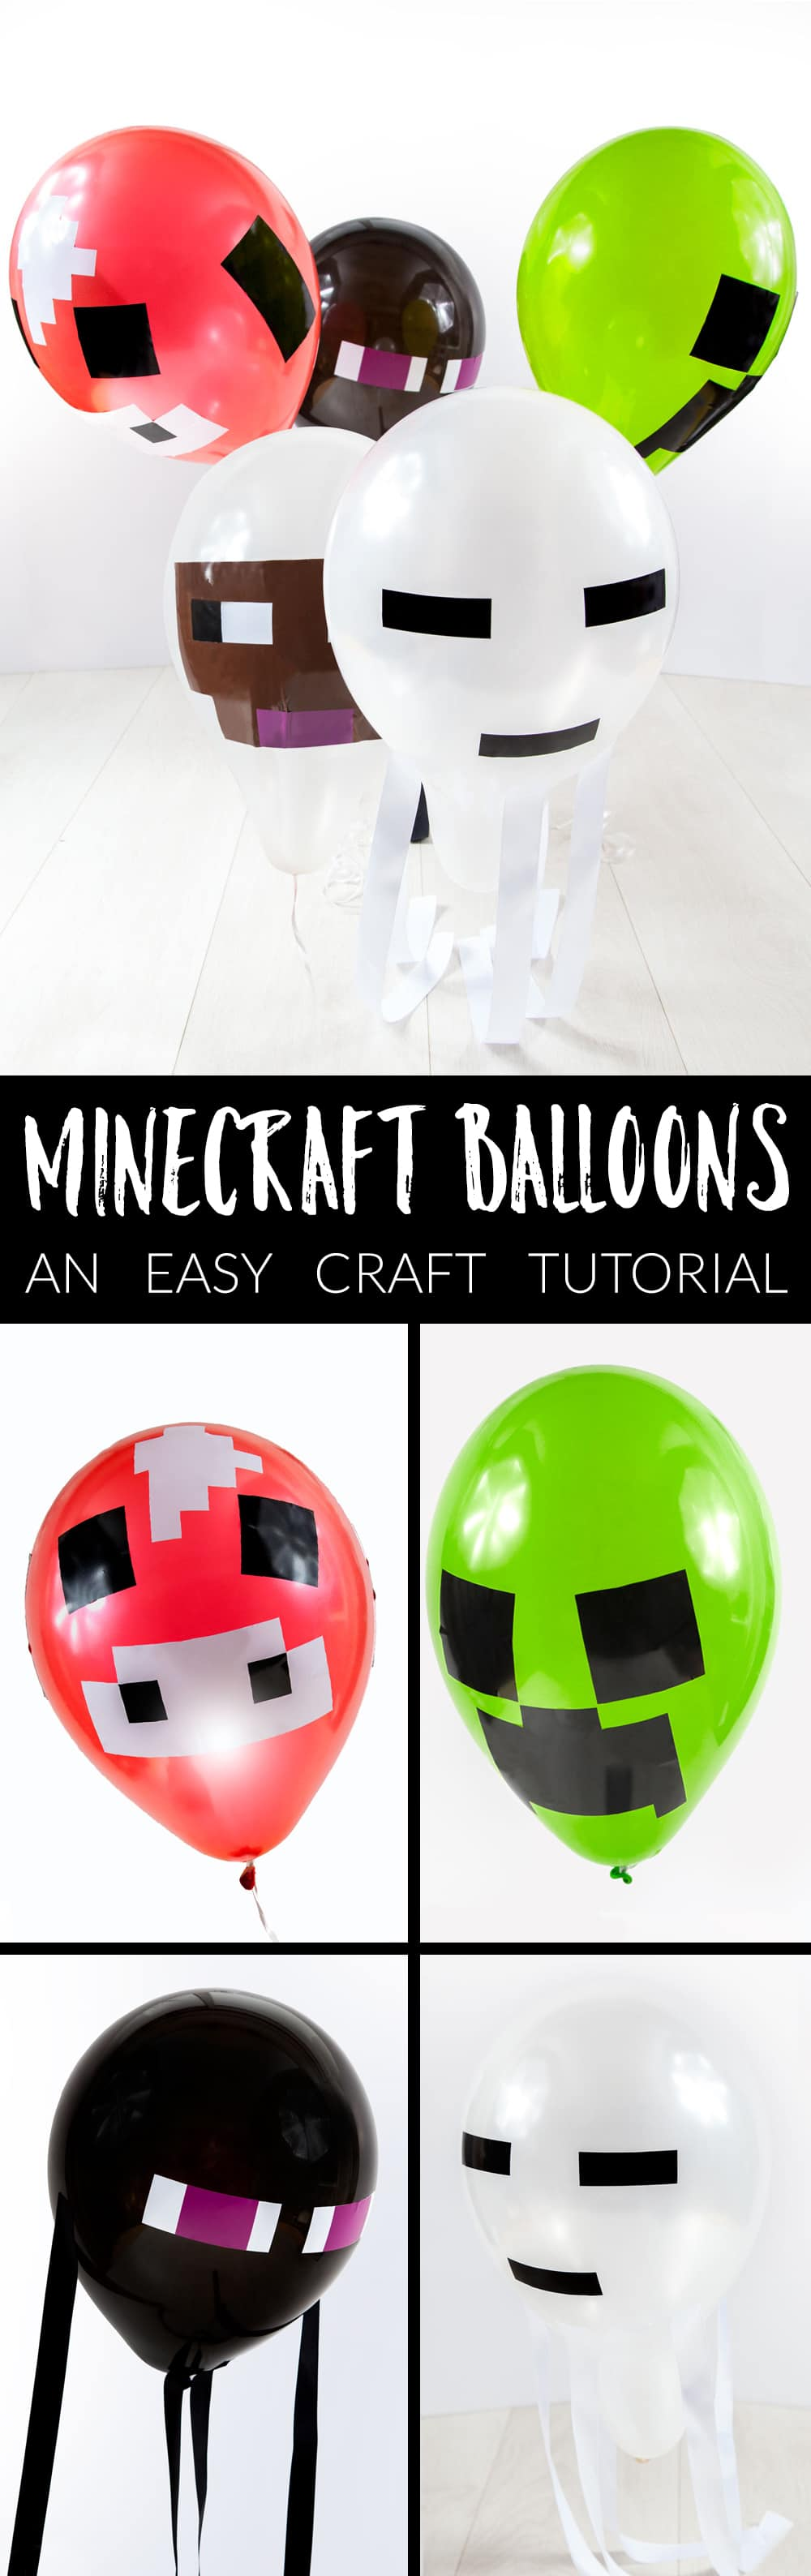 Front angle shot of minecraft balloons with text MINECRAFT BALLOONS AN EASY CRAFT TUTORIAL in the middle with collage of four red, black, green, and white balloons